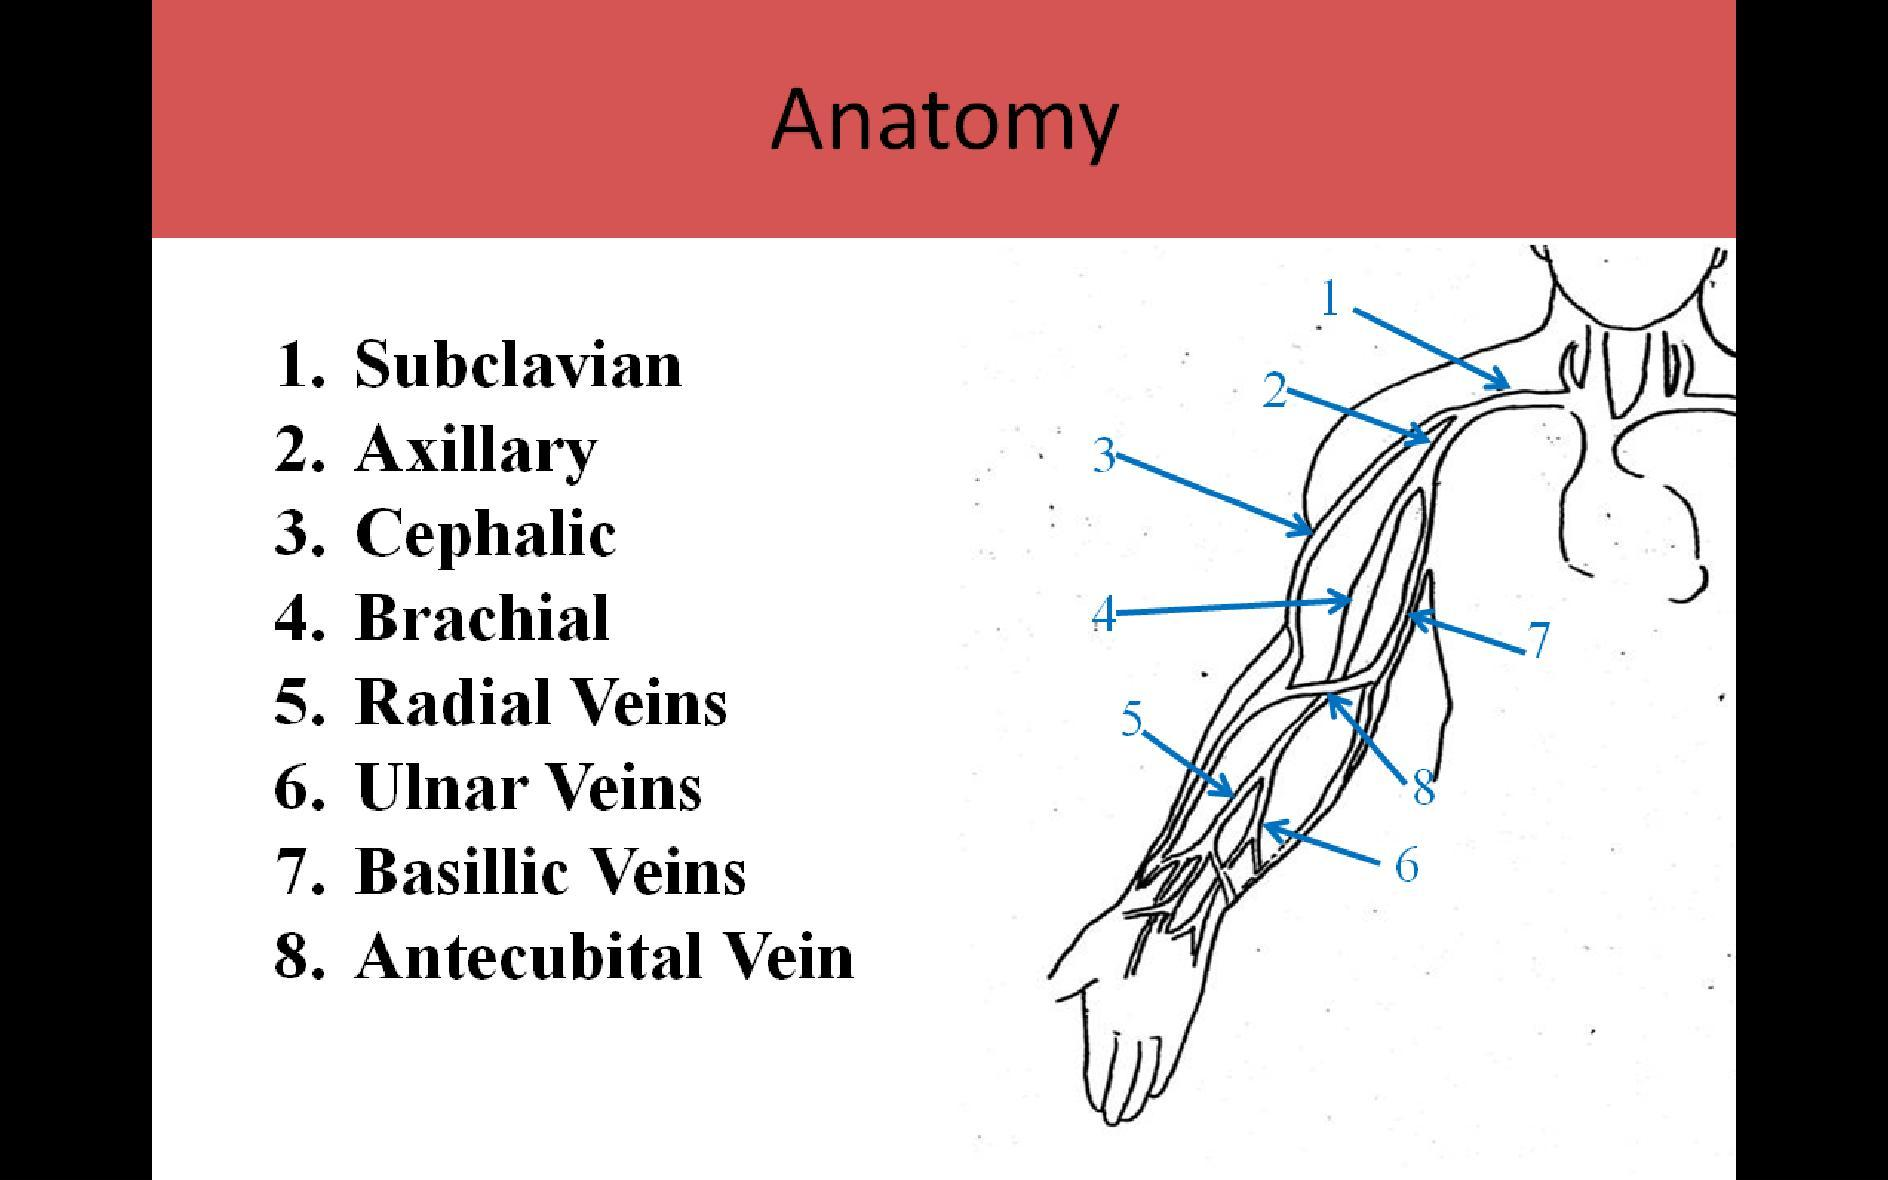 Upper Extremity Venous Anatomy Ultrasound Gallery Human Body Anatomy